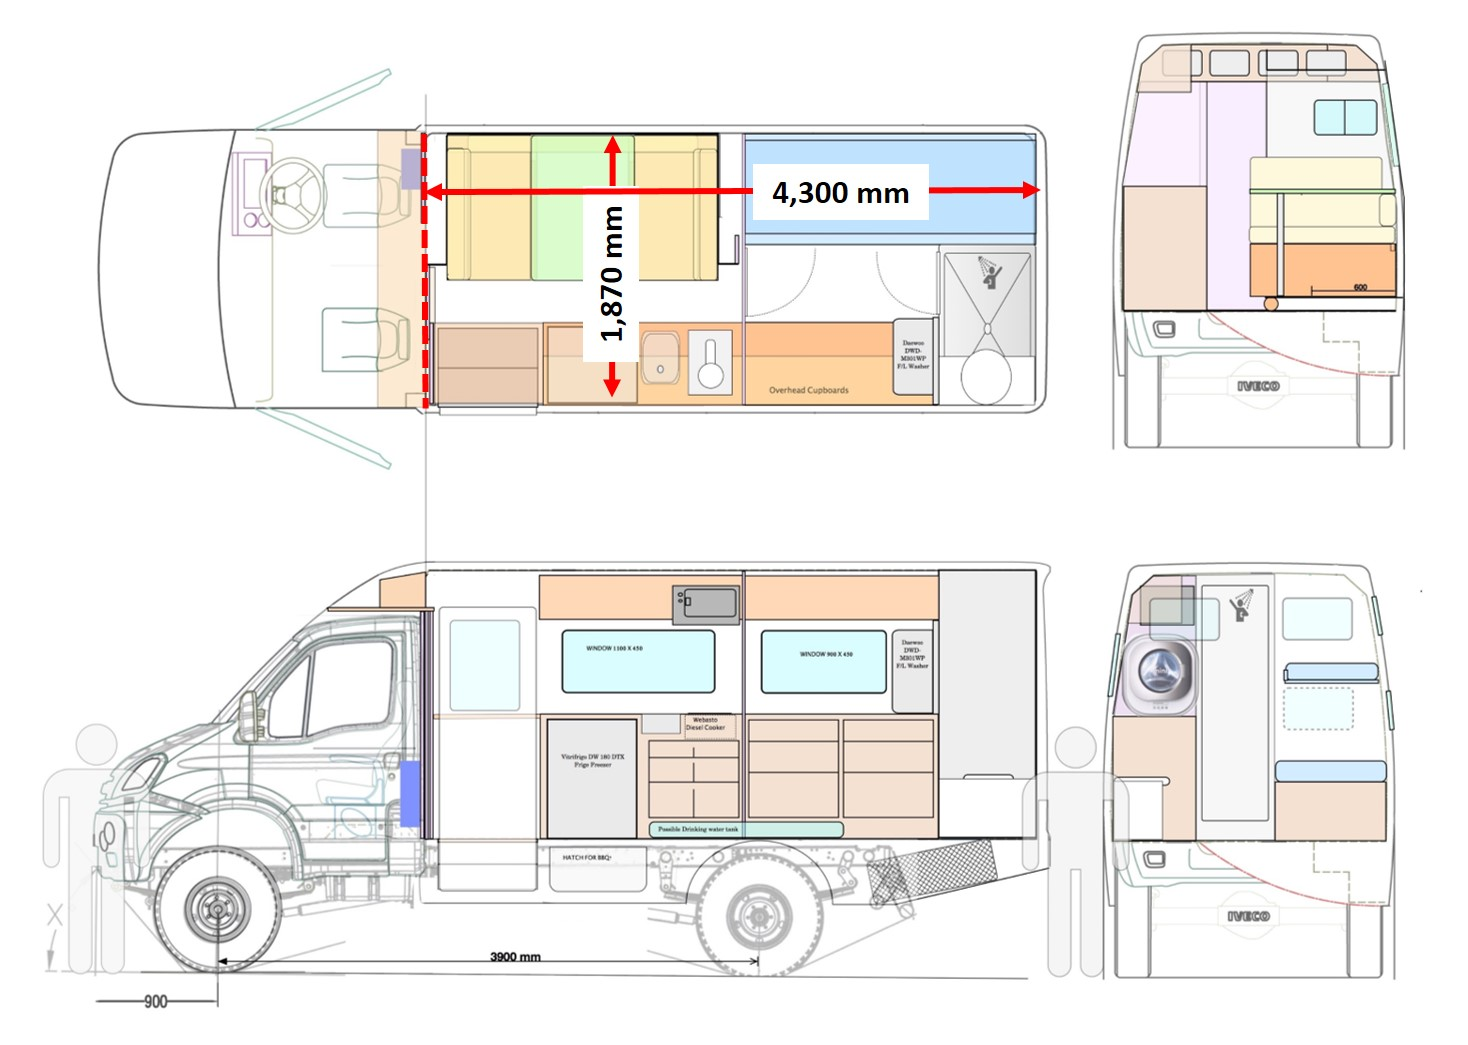 Iveco Daily 4wd Motorhome Shell 4x4 Motorhomes Engine Fuel System Diagrams